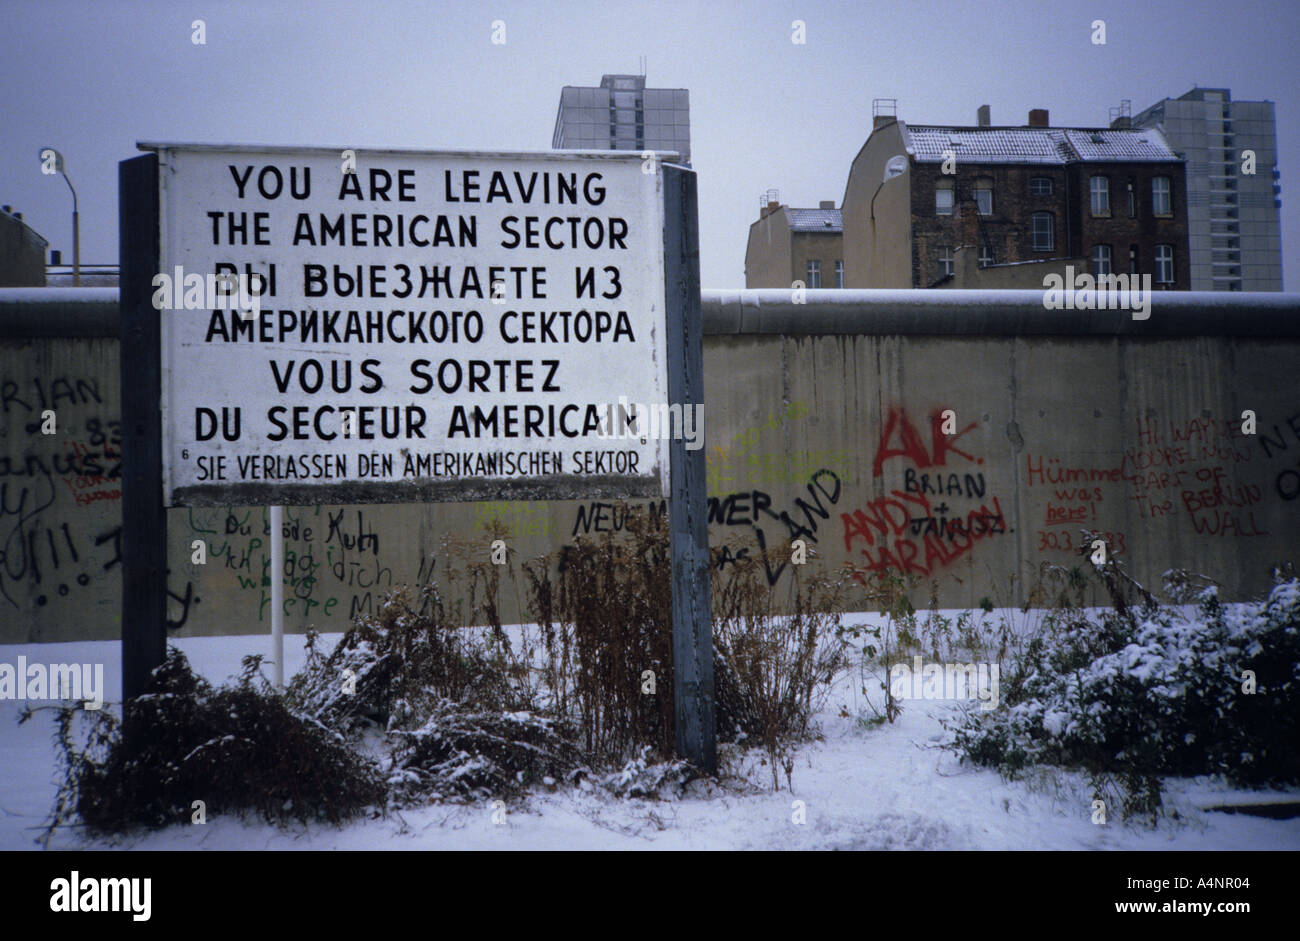 https://c7.alamy.com/comp/A4NR04/berlin-wall-in-1984-sign-you-are-leaving-the-american-sector-iron-A4NR04.jpg